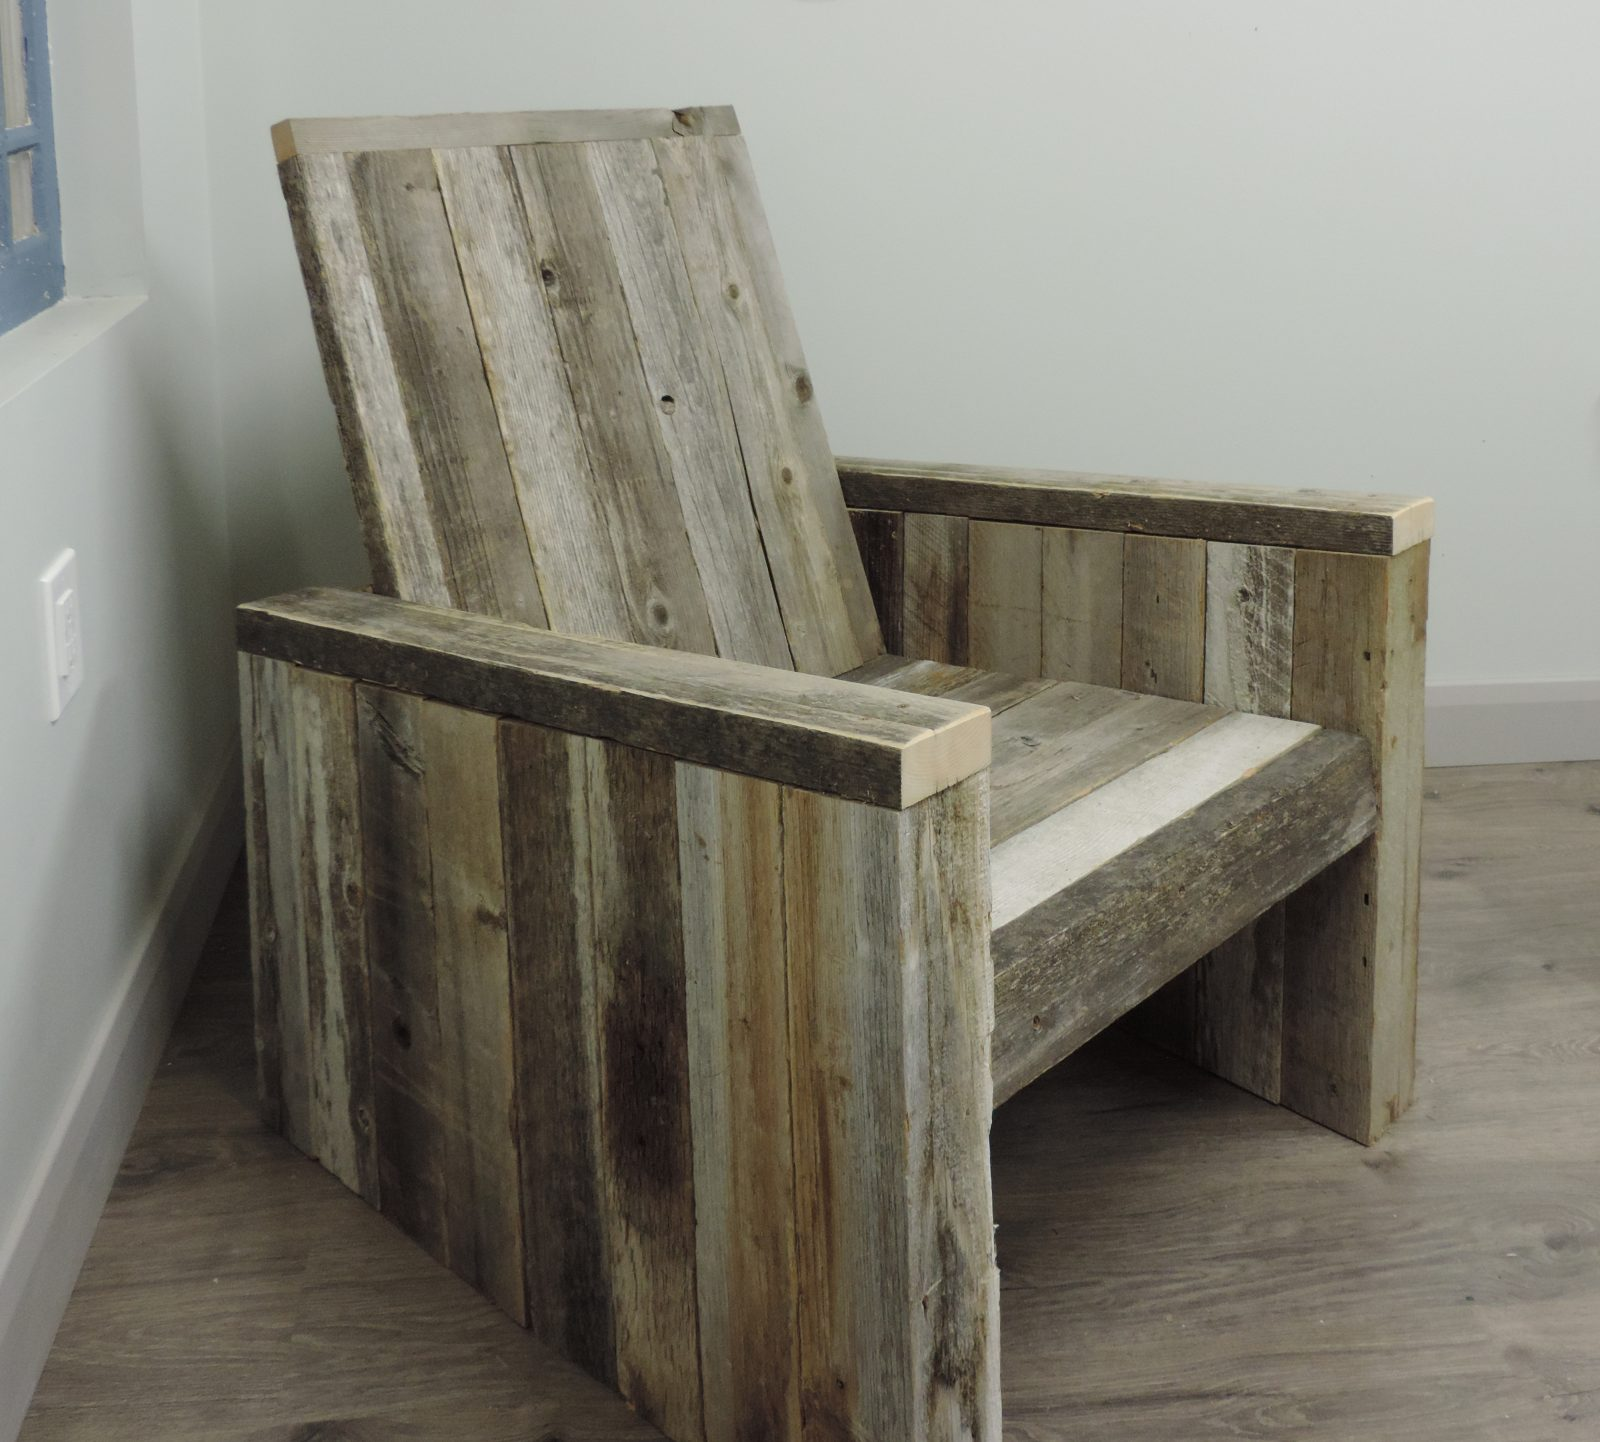 all barn wood rustic industrial modern adirondack rustindack chair full size reclaimed wood indoor outdoor chair patio porch living room